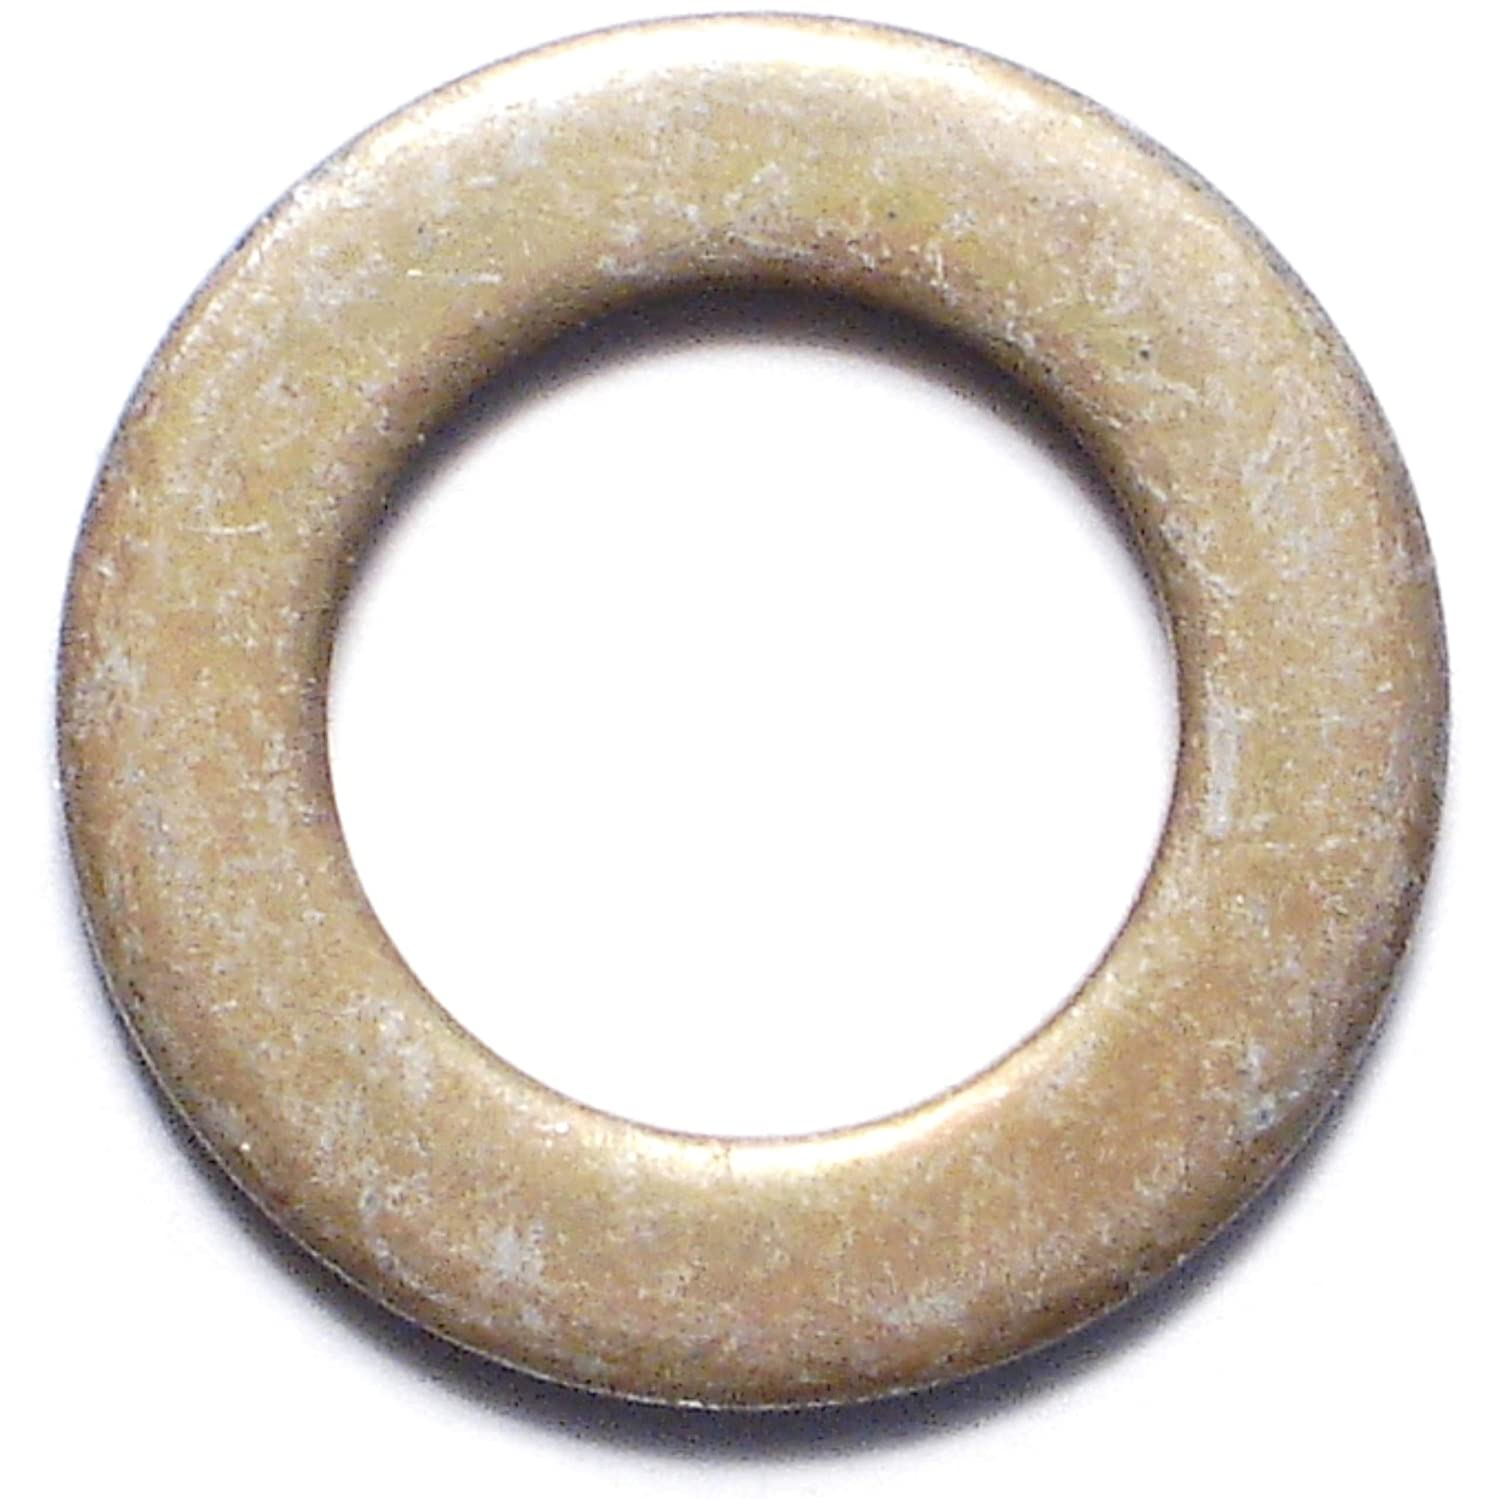 Hard-to-Find Fastener 014973228743 AN Washers Piece-12 Midwest Fastener Corp 7//16